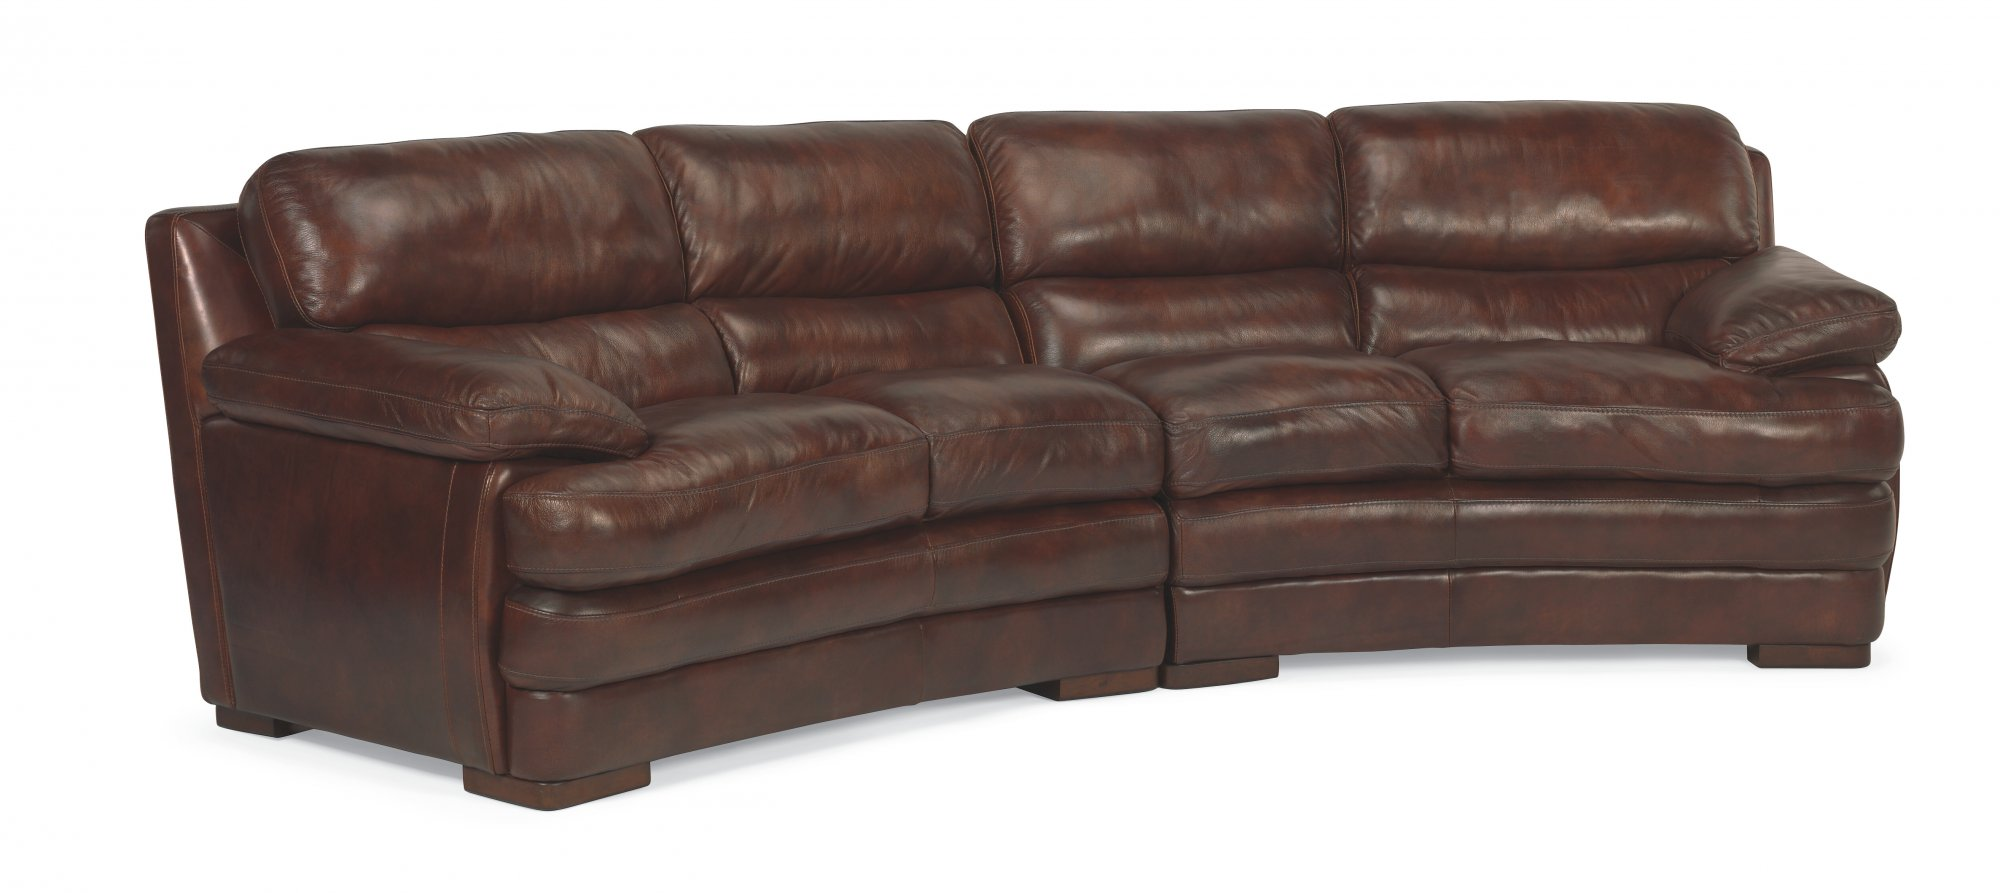 Dylan Leather Sofa Reviews Sofa Review